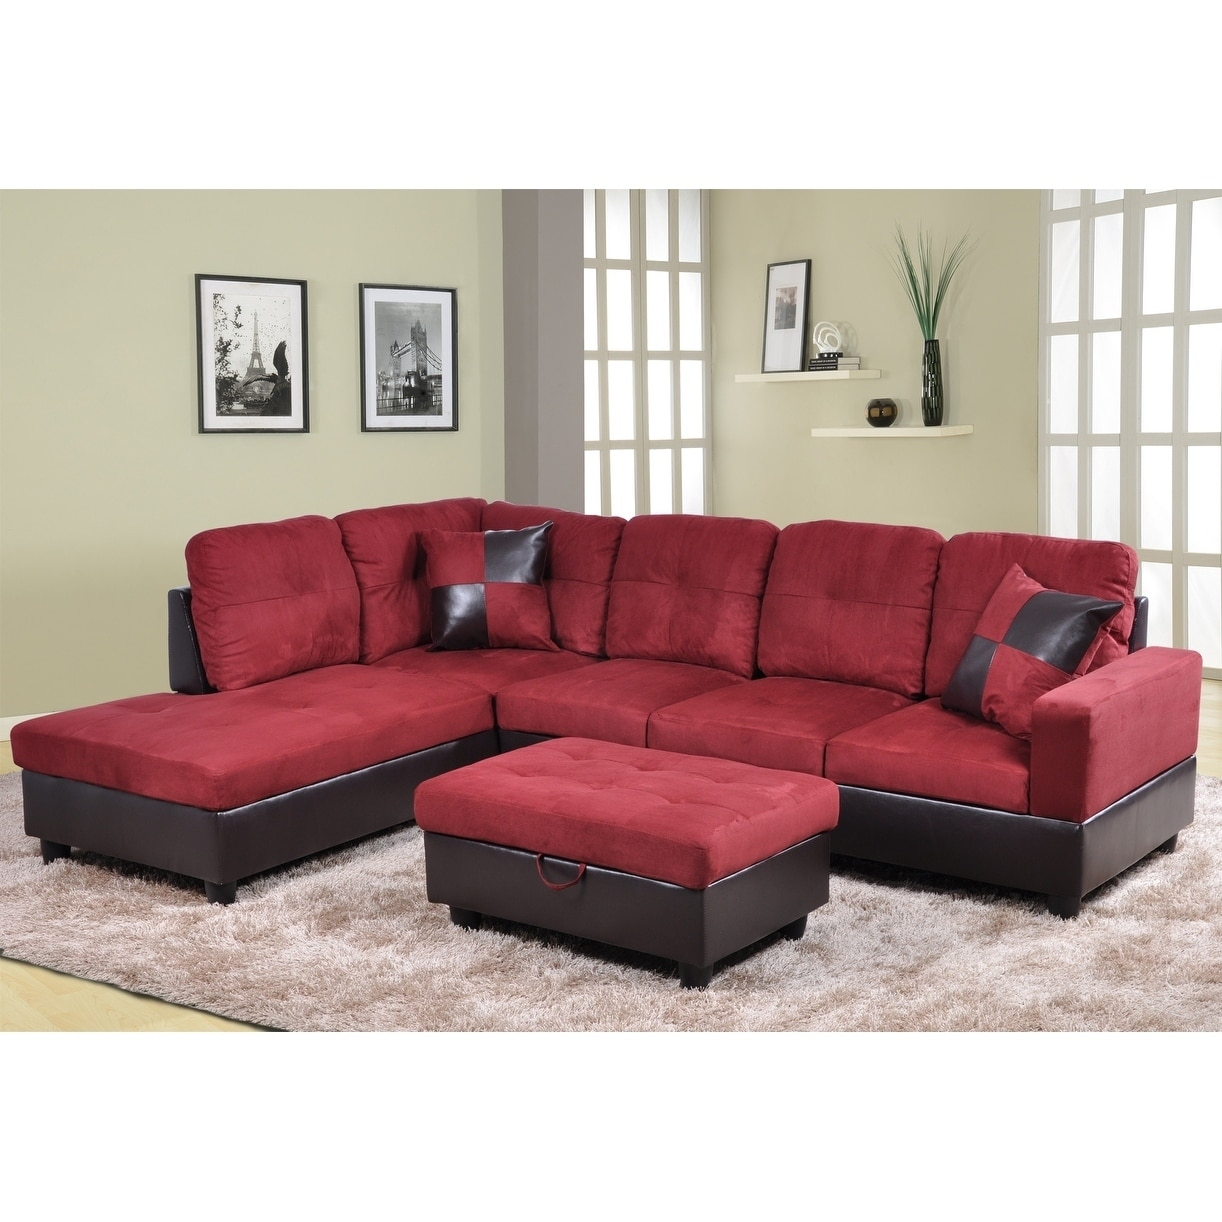 Golden Coast Furniture 3 Piece Microfiber Leather Sofa Sectional With  Ottoman Storage   Free Shipping Today   Overstock   27616075